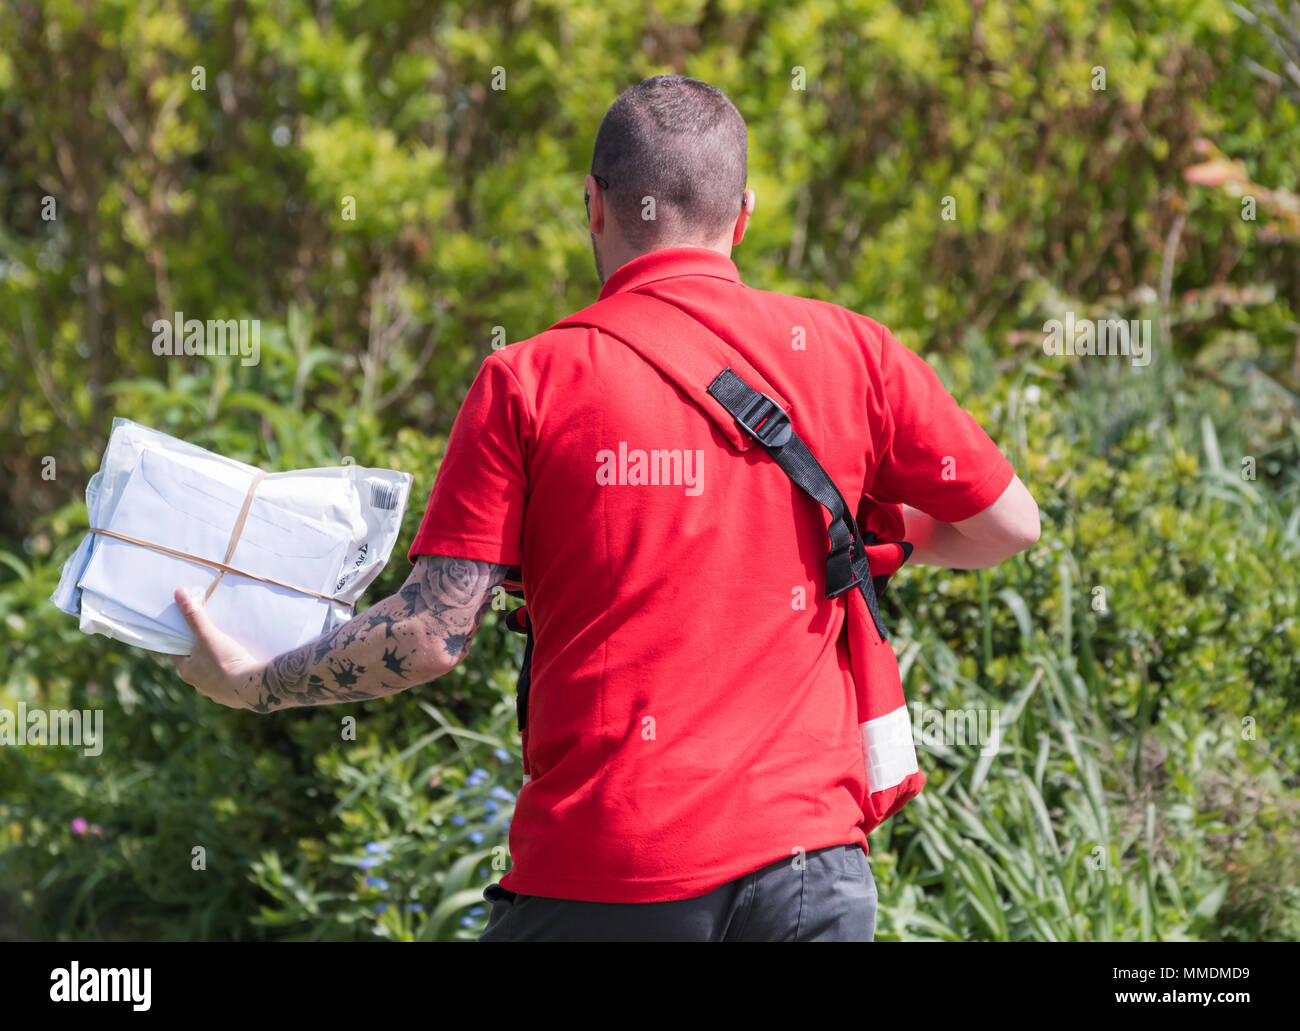 British Royal Mail Postman holding a handful of letters while walking through a park on a sunny day in England, UK. - Stock Image